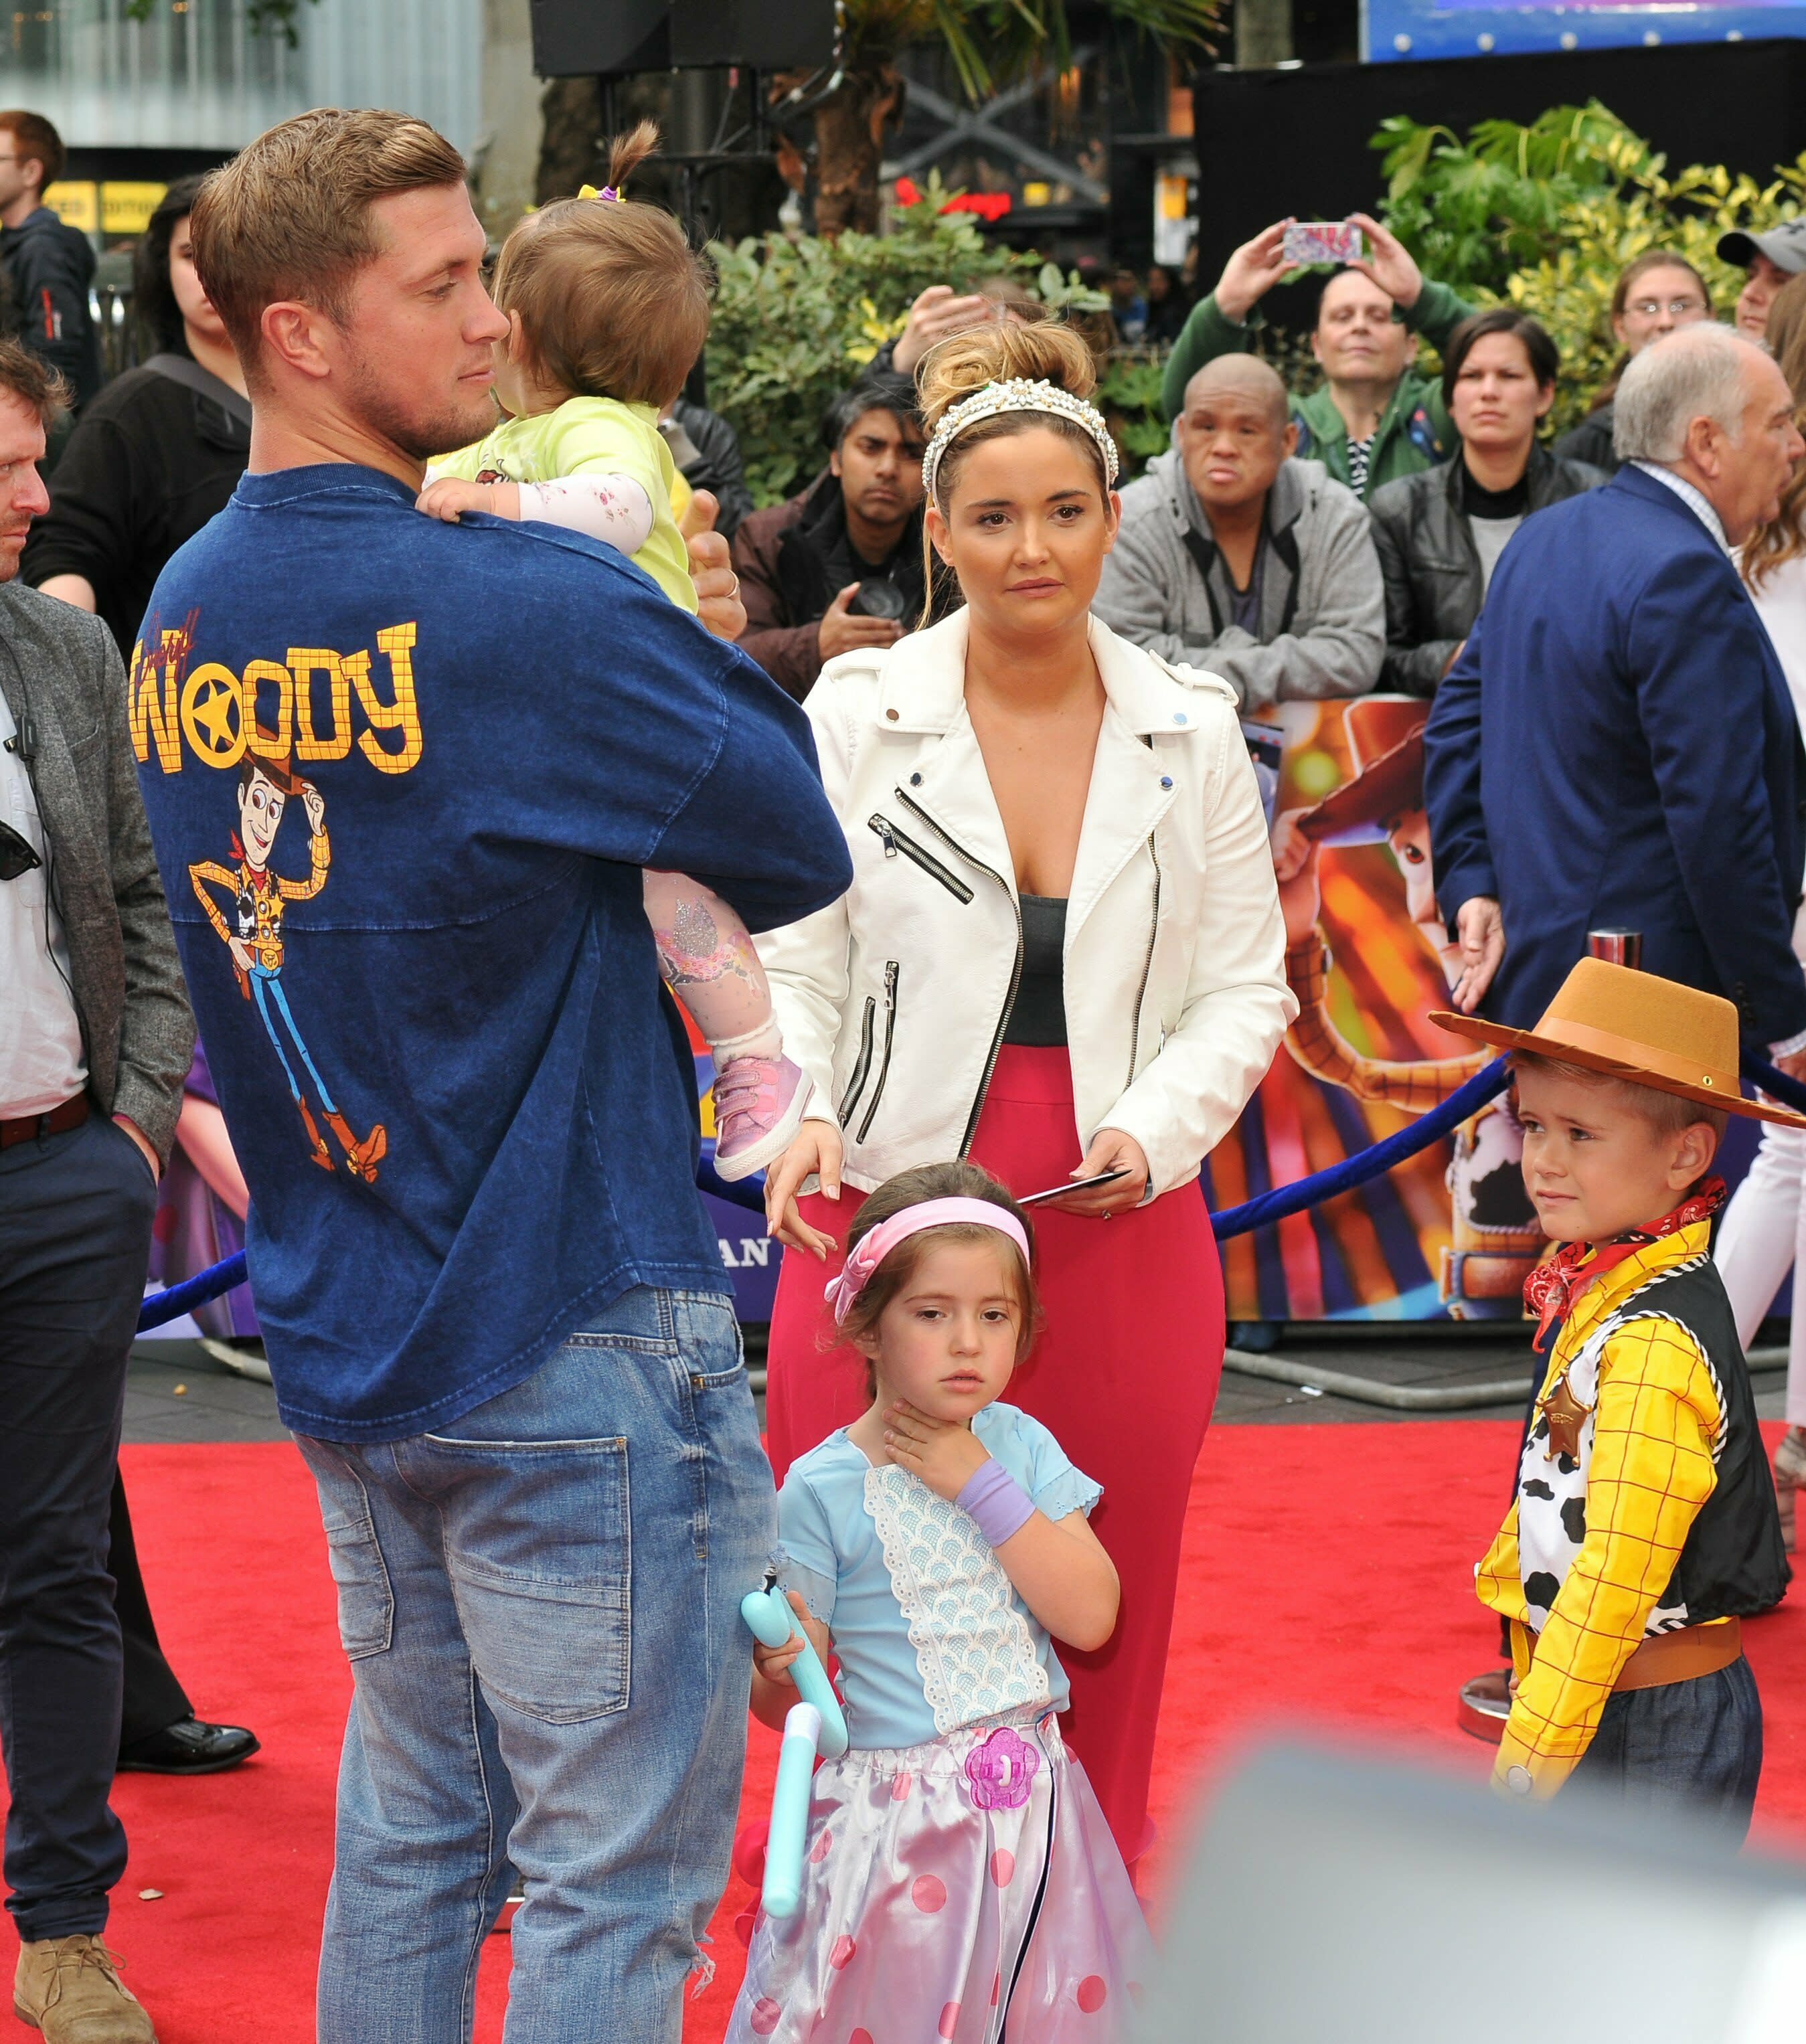 Jacqueline Jossa says reuniting with family better than winning 'I'm A Celebrity'